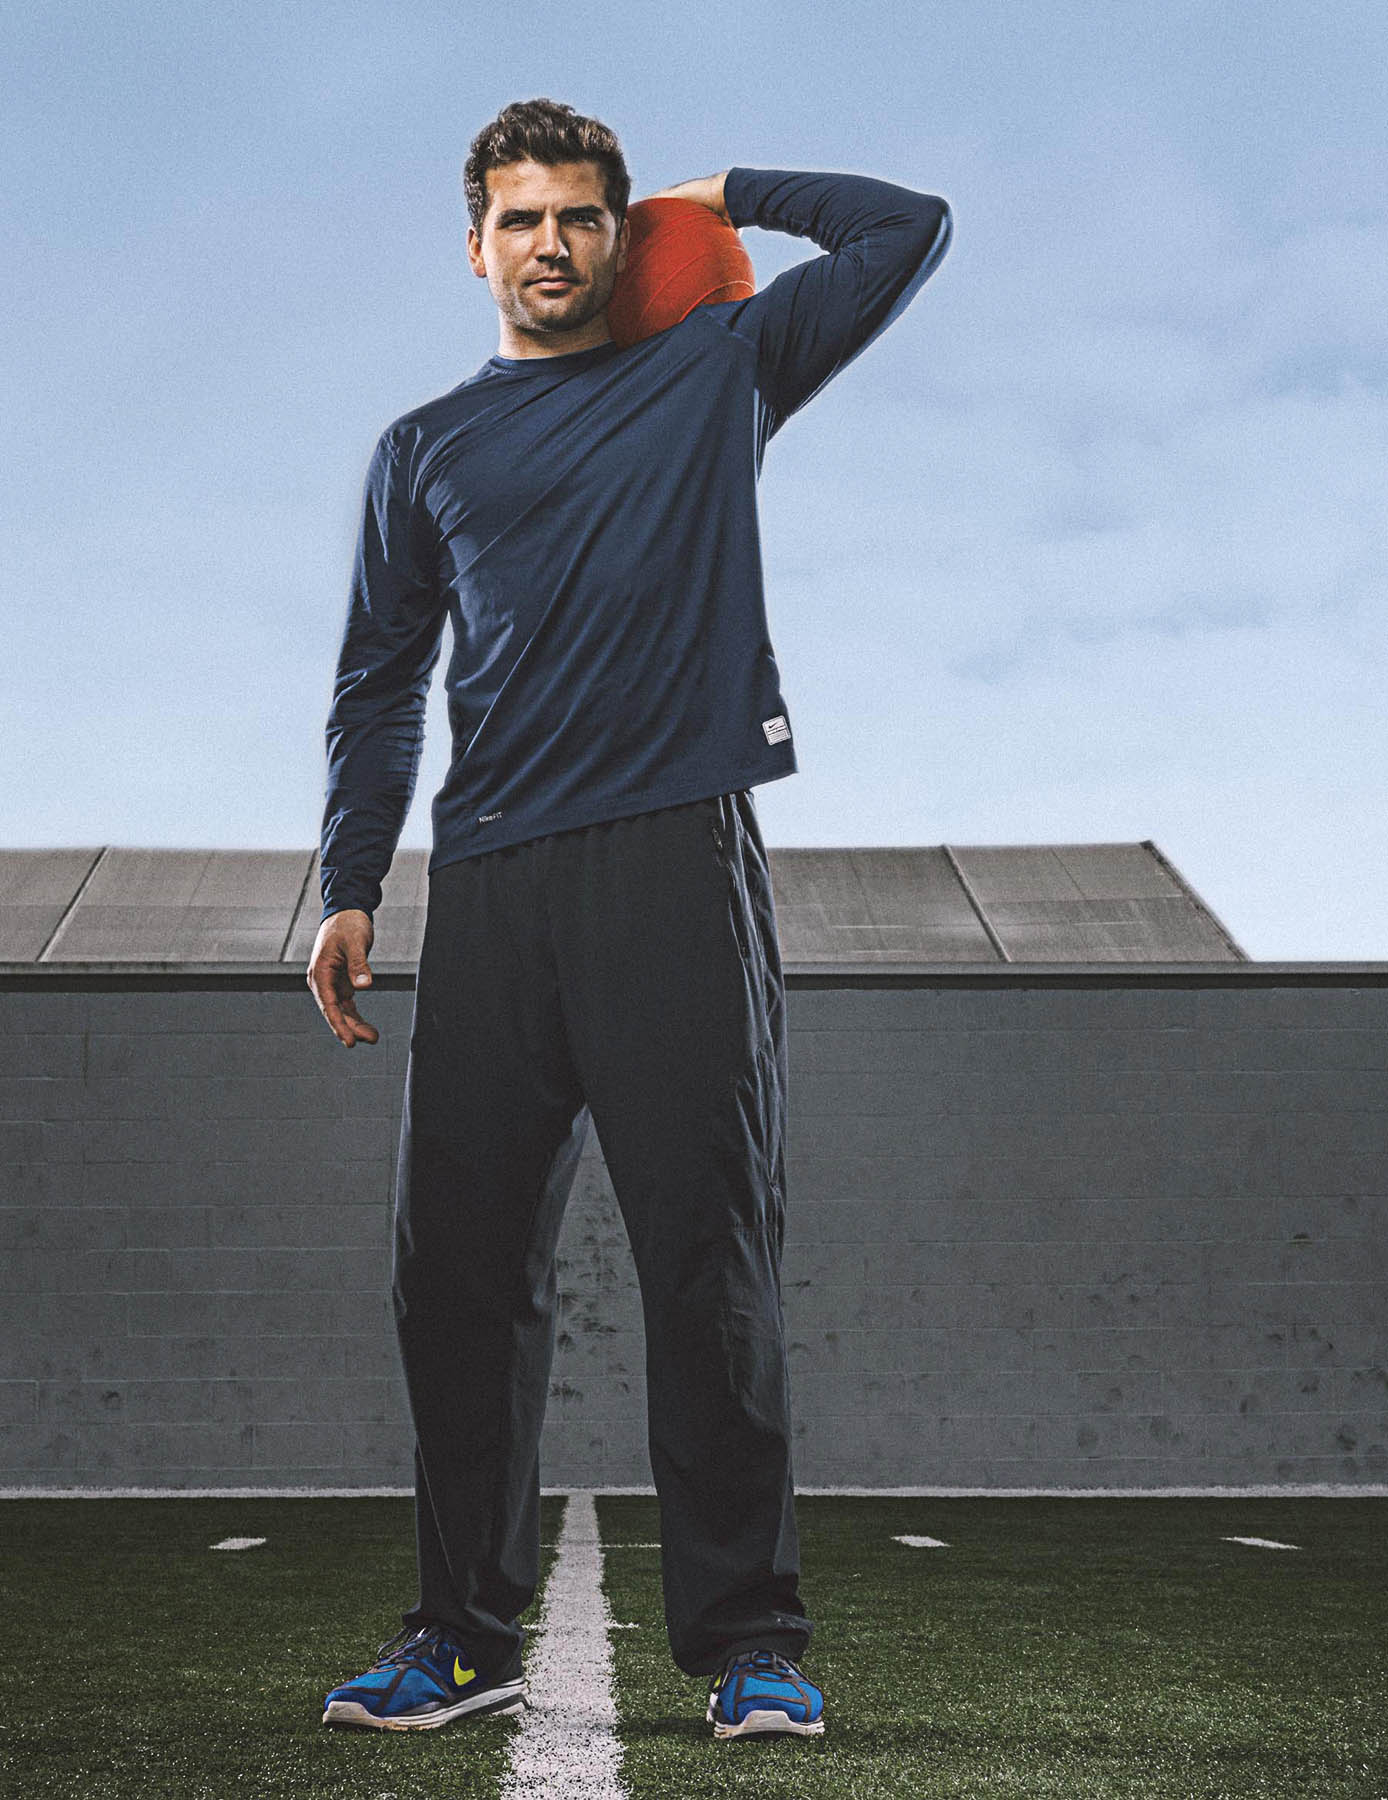 celebrity-athlete-photographer-bob-croslin-joey-votto-sports-fitness-magazine-baseball